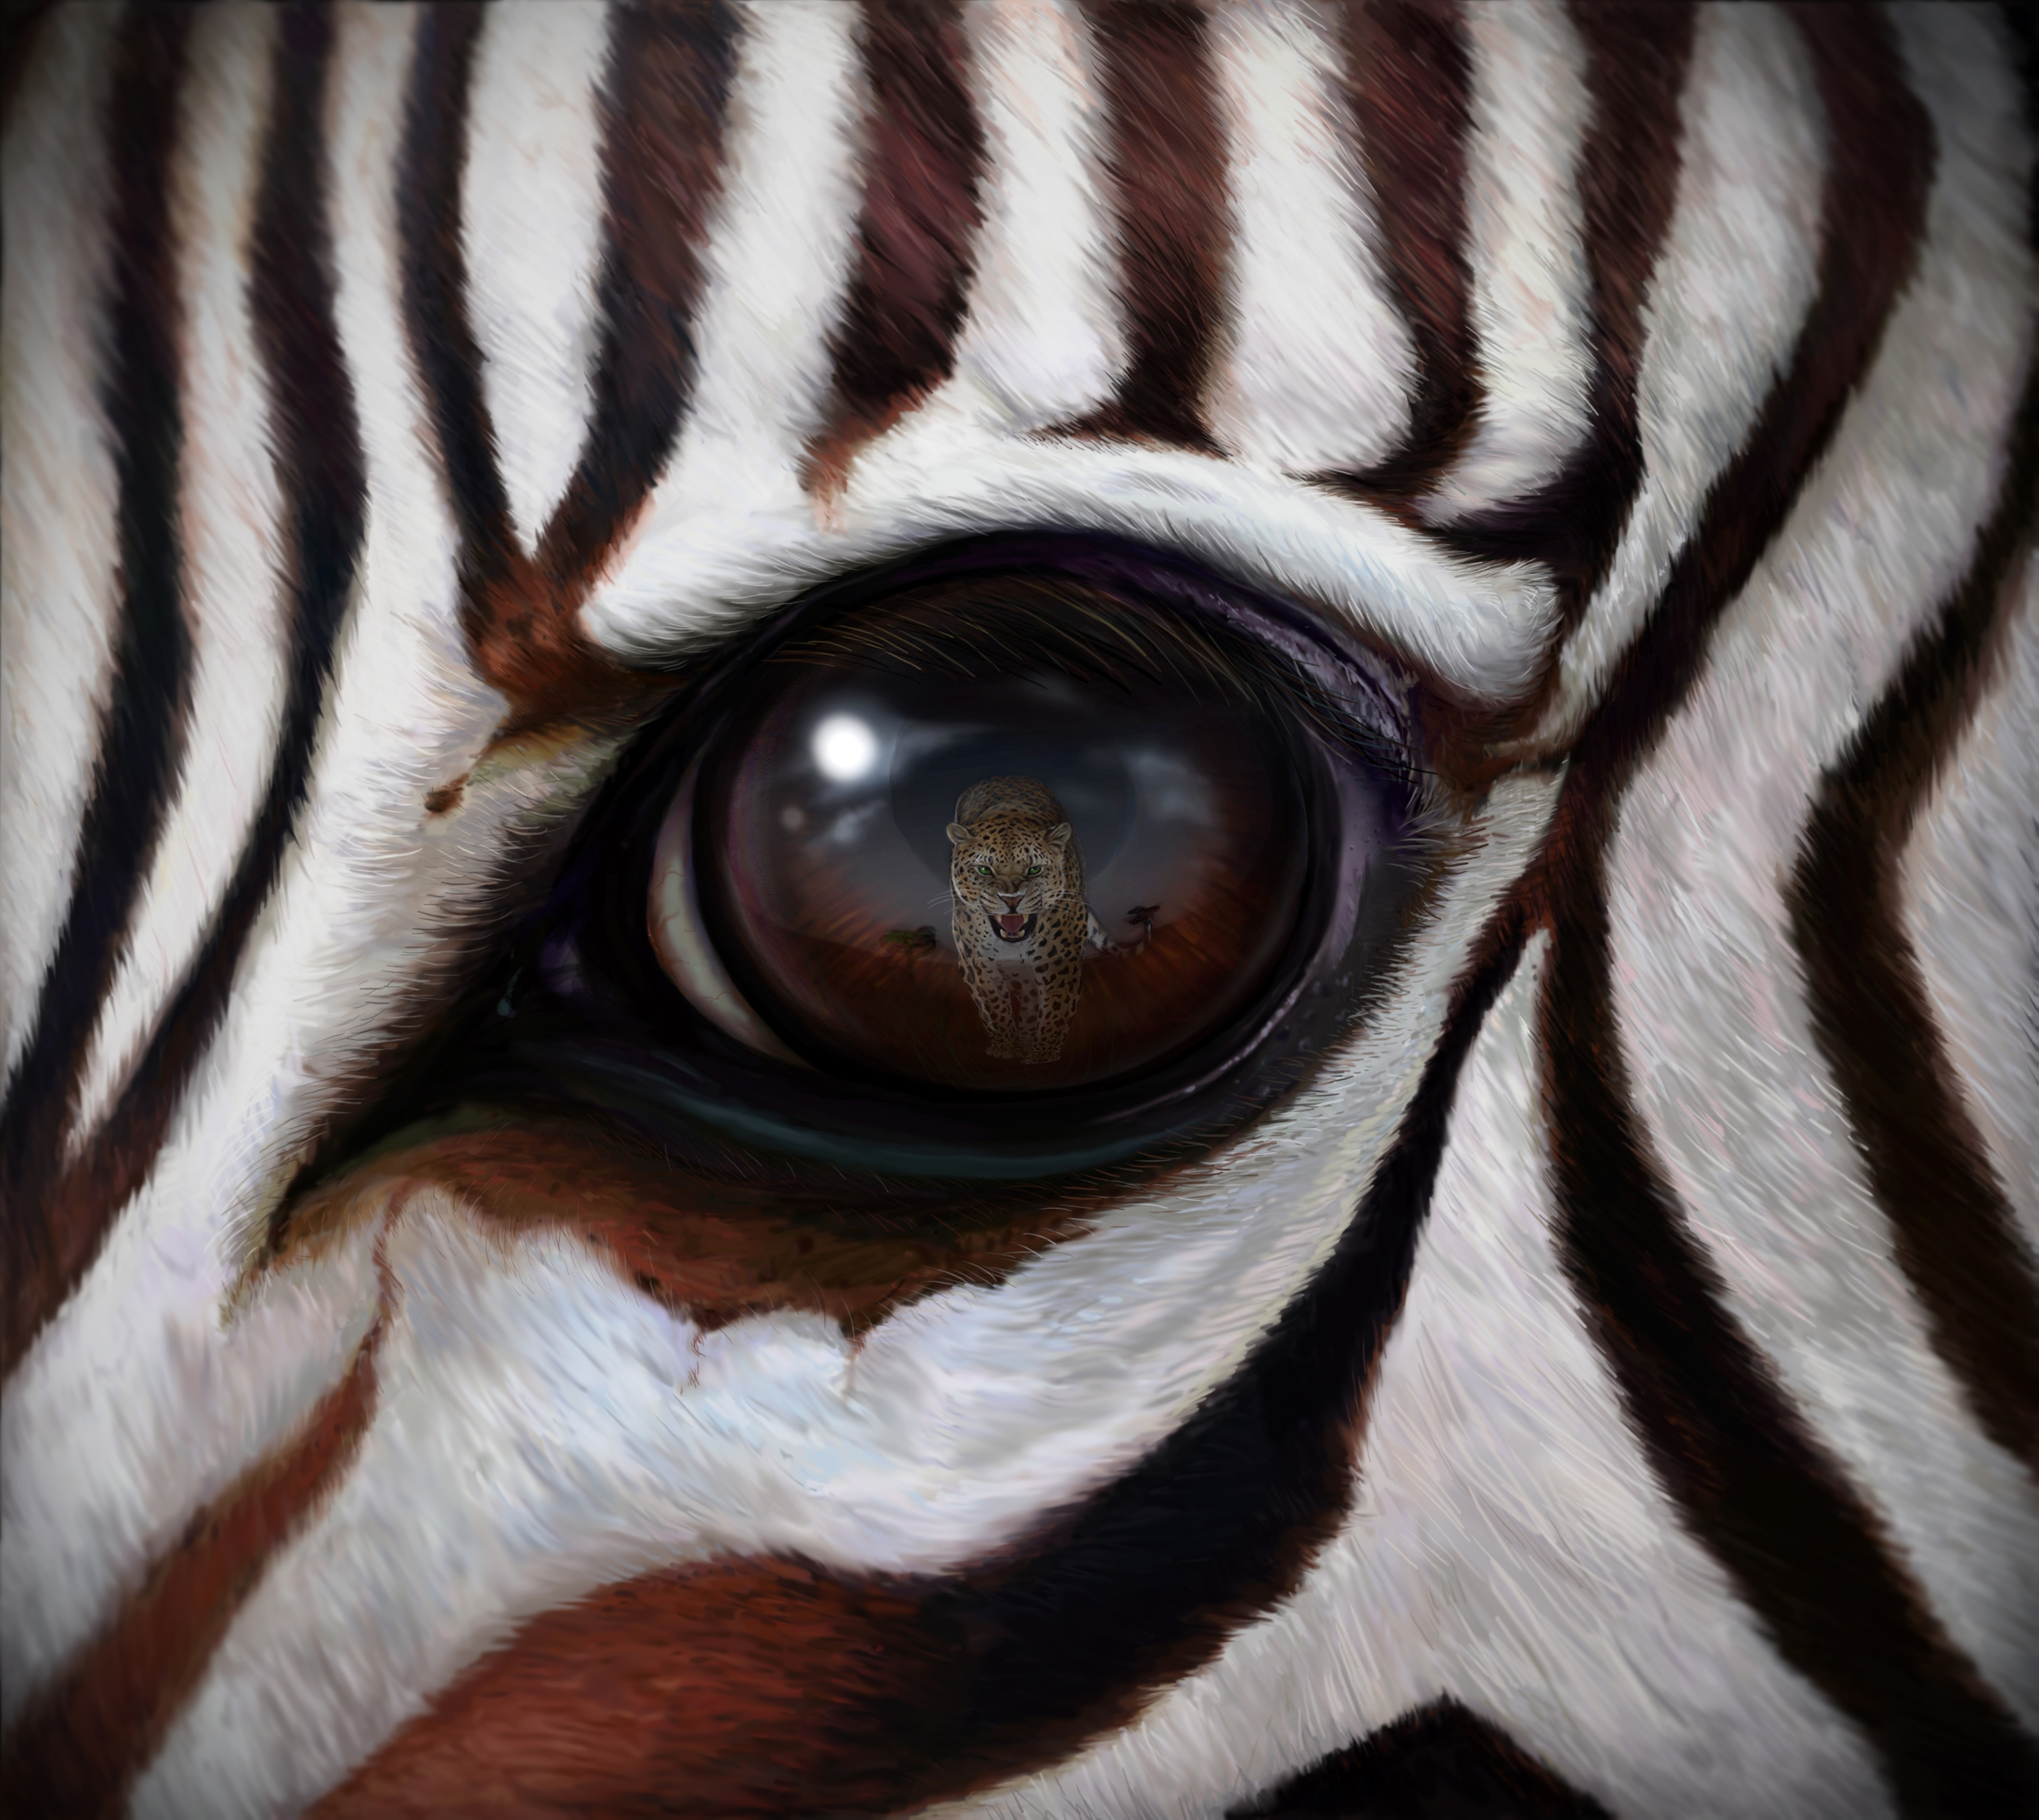 148829 download wallpaper Art, Zebra, Eye, Reflection, Leopard, Predator screensavers and pictures for free